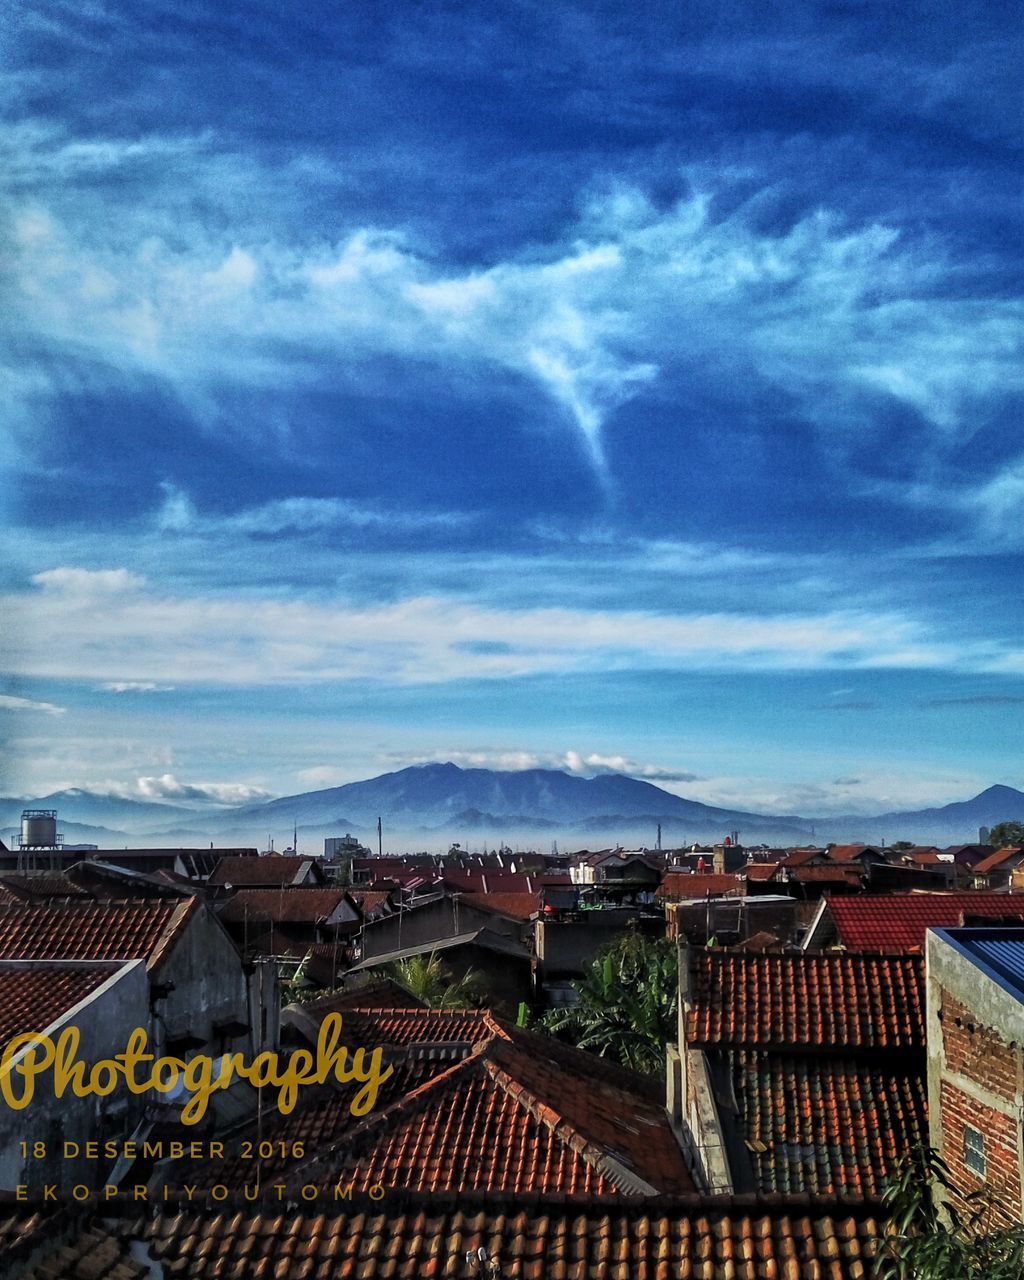 architecture, roof, house, building exterior, built structure, sky, town, mountain, residential building, no people, outdoors, day, community, cityscape, tiled roof, city